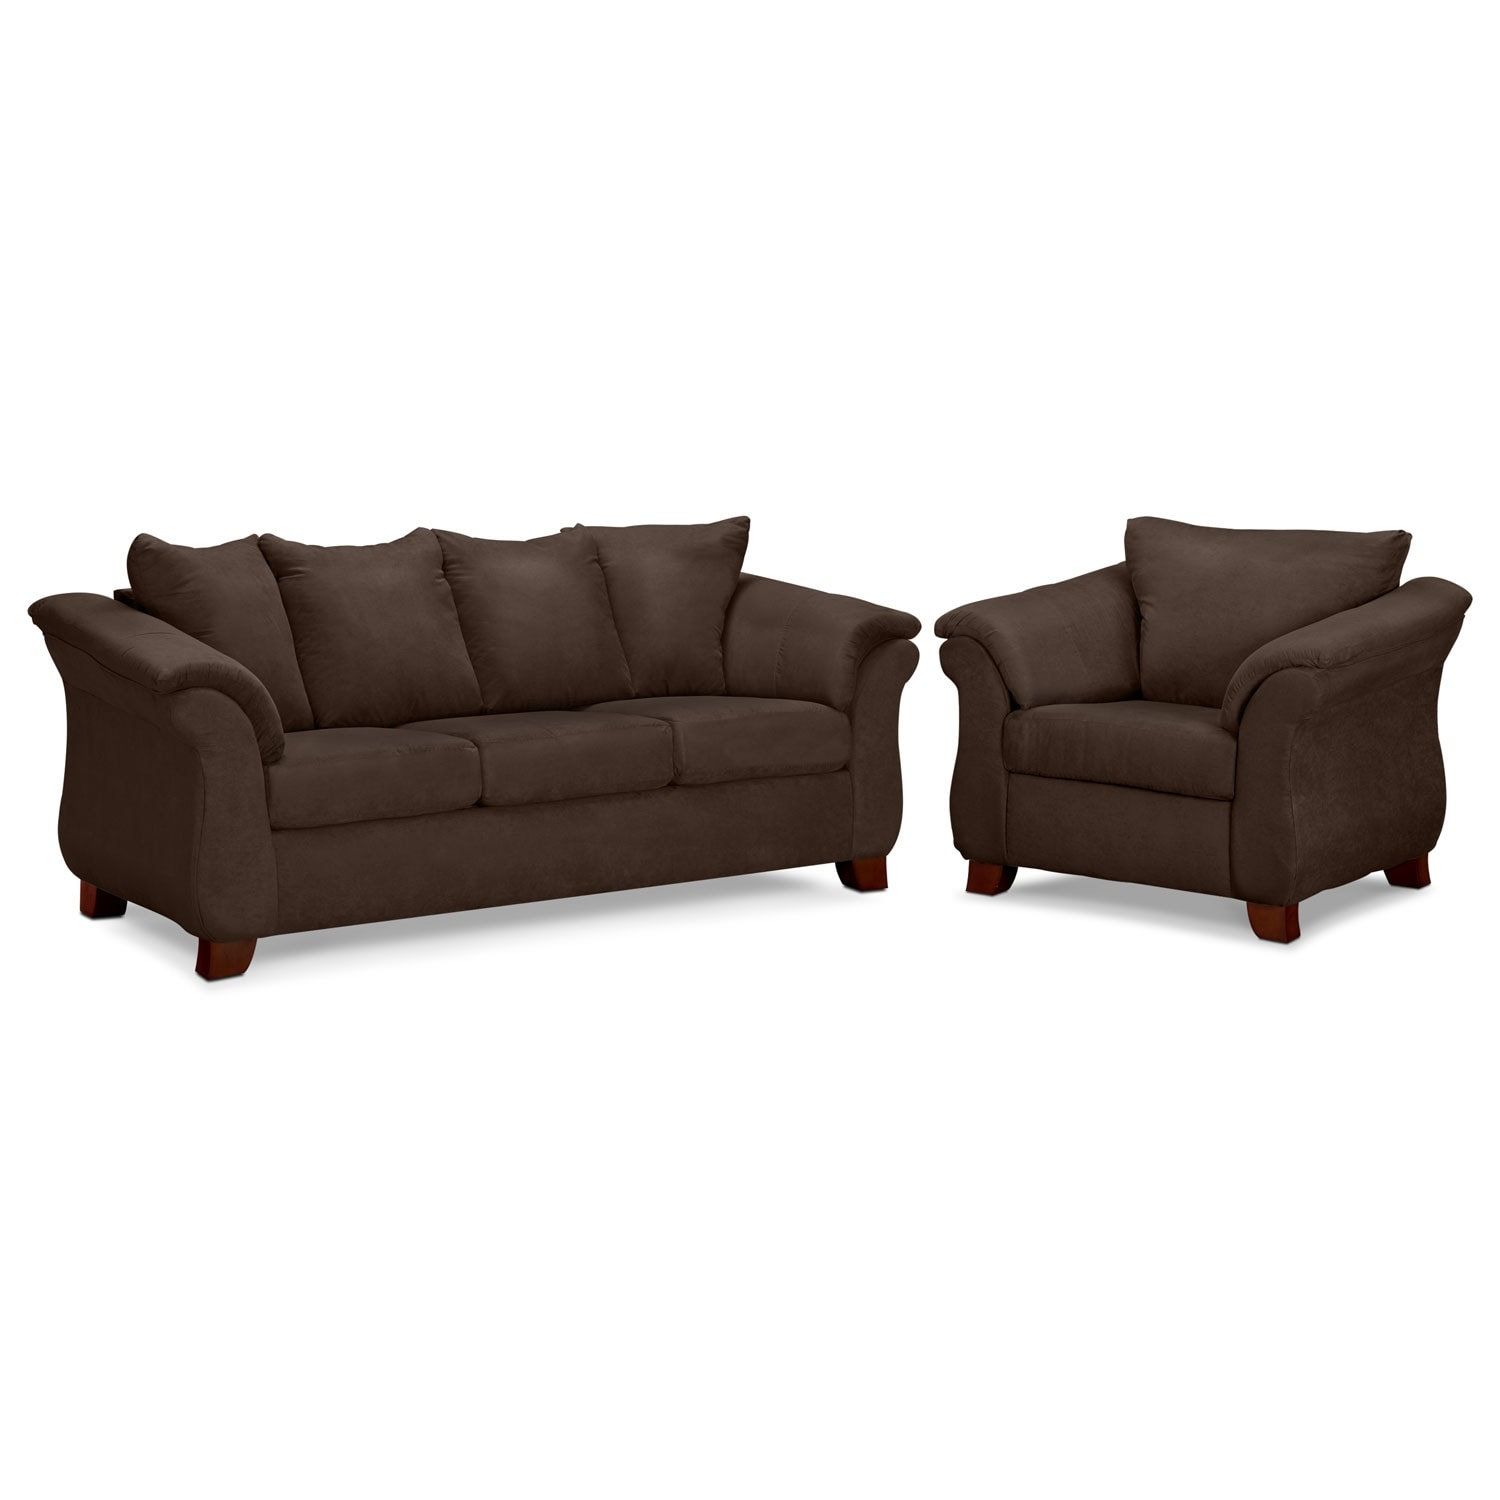 Adrian Sofa and Chair Set - Chocolate